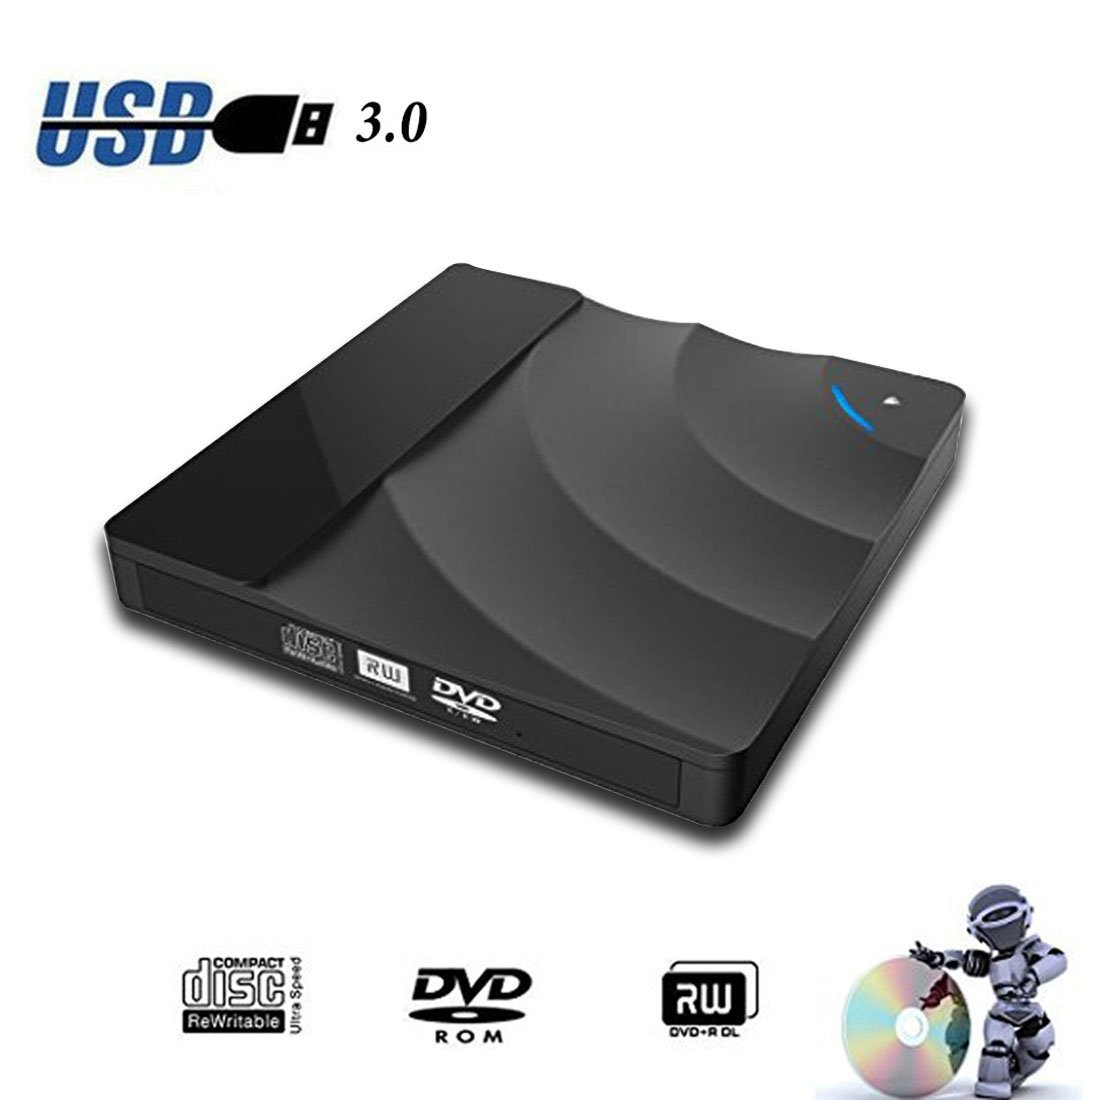 Sunreal External DVD Drive, USB 3.0 CD DVD Drive Ultra Slim Portable Touch Control CD/DVD Burner Writer Reader Player for Laptop/Desktop Computer, Support Windows/Vista/ Mac OS(Black)